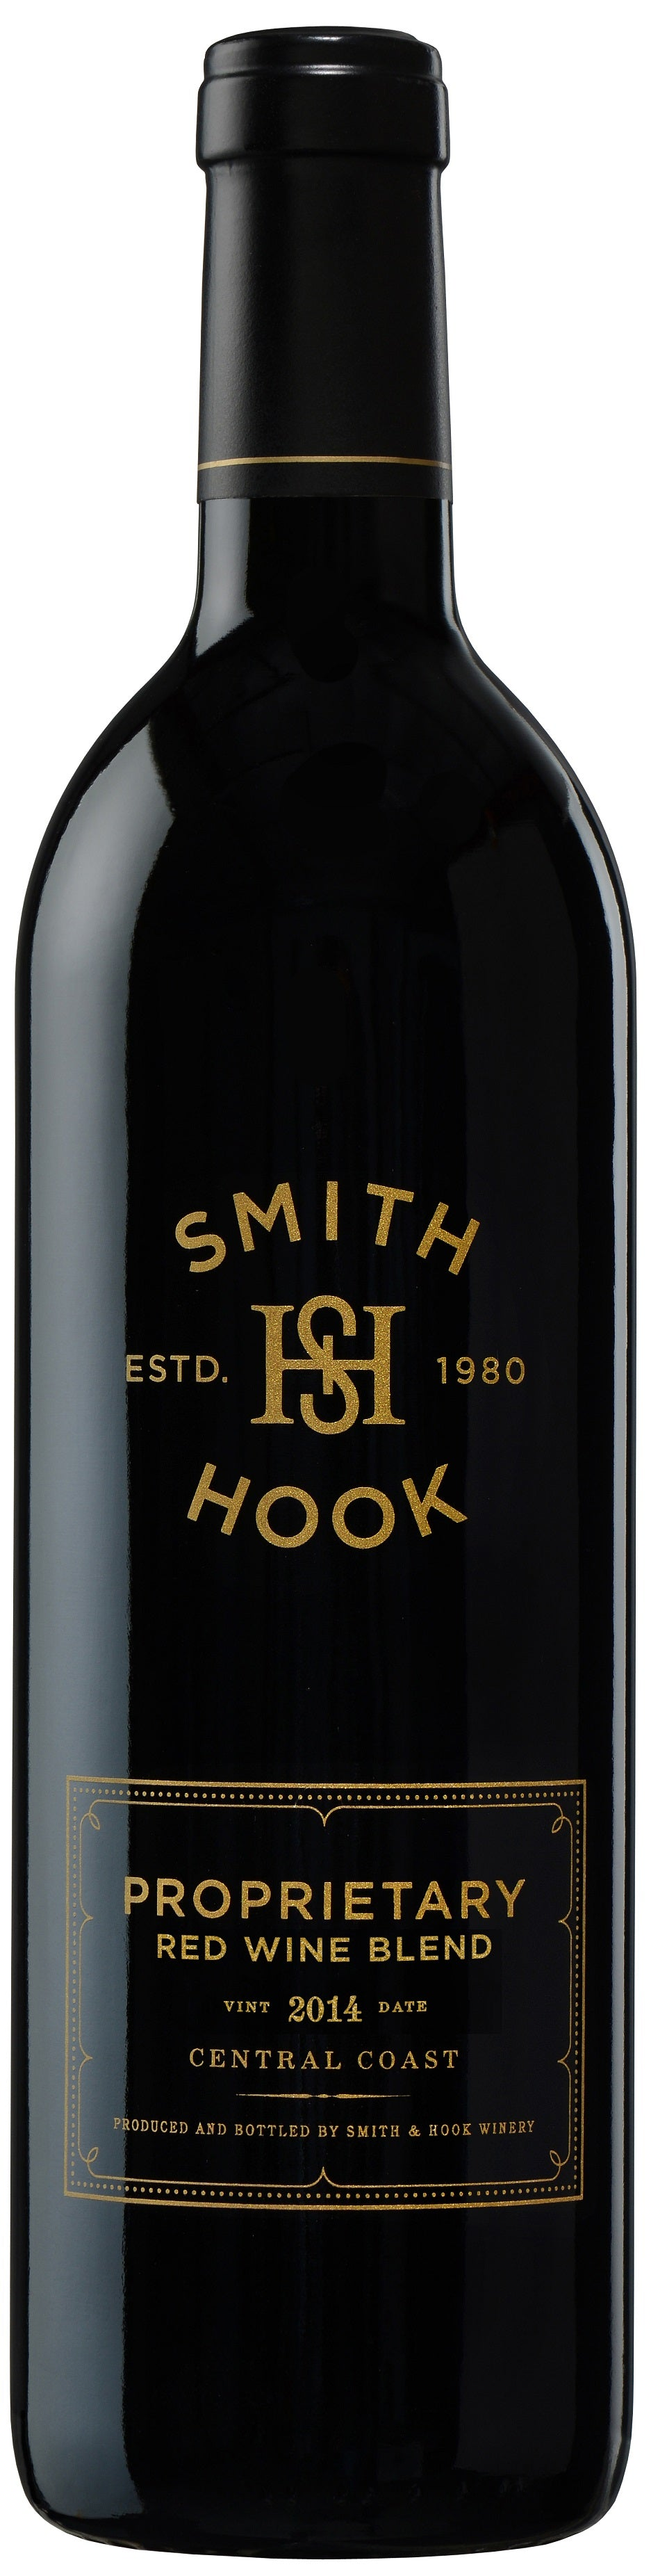 Smith & Hook Proprietary Red Wine Blend 2014